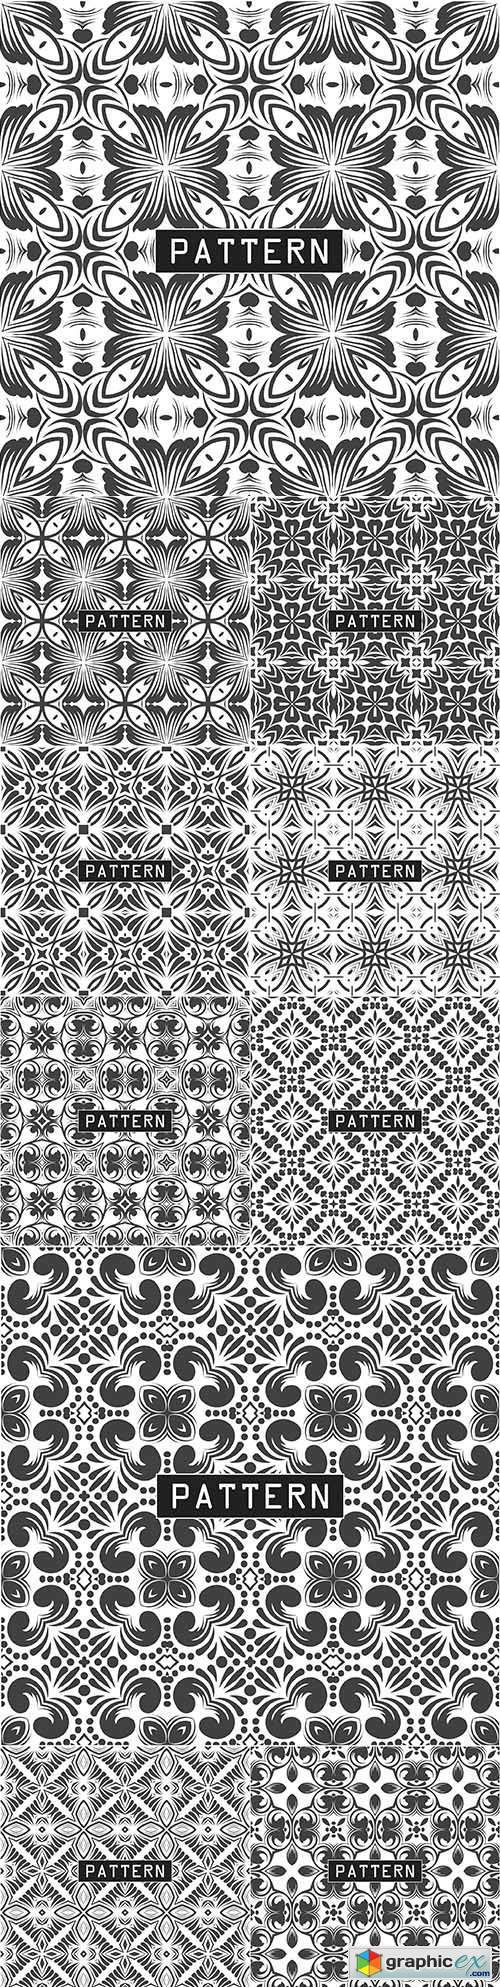 Decorative black and white seamless design pattern